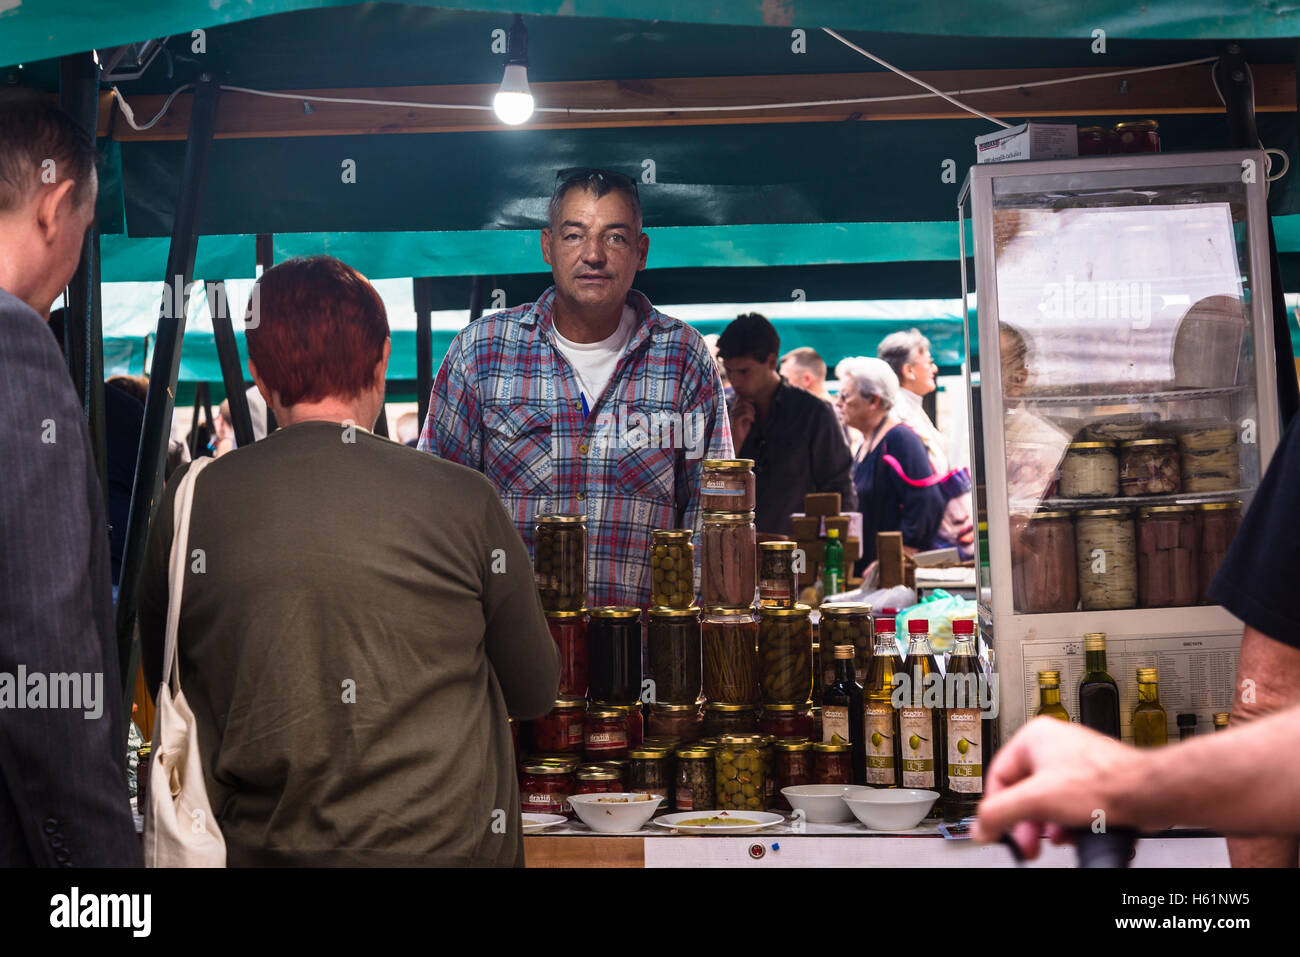 Stall with olive oil and olives, Producers' artisan market, Ban Jelacic Square, Zagreb, Croatia - Stock Image